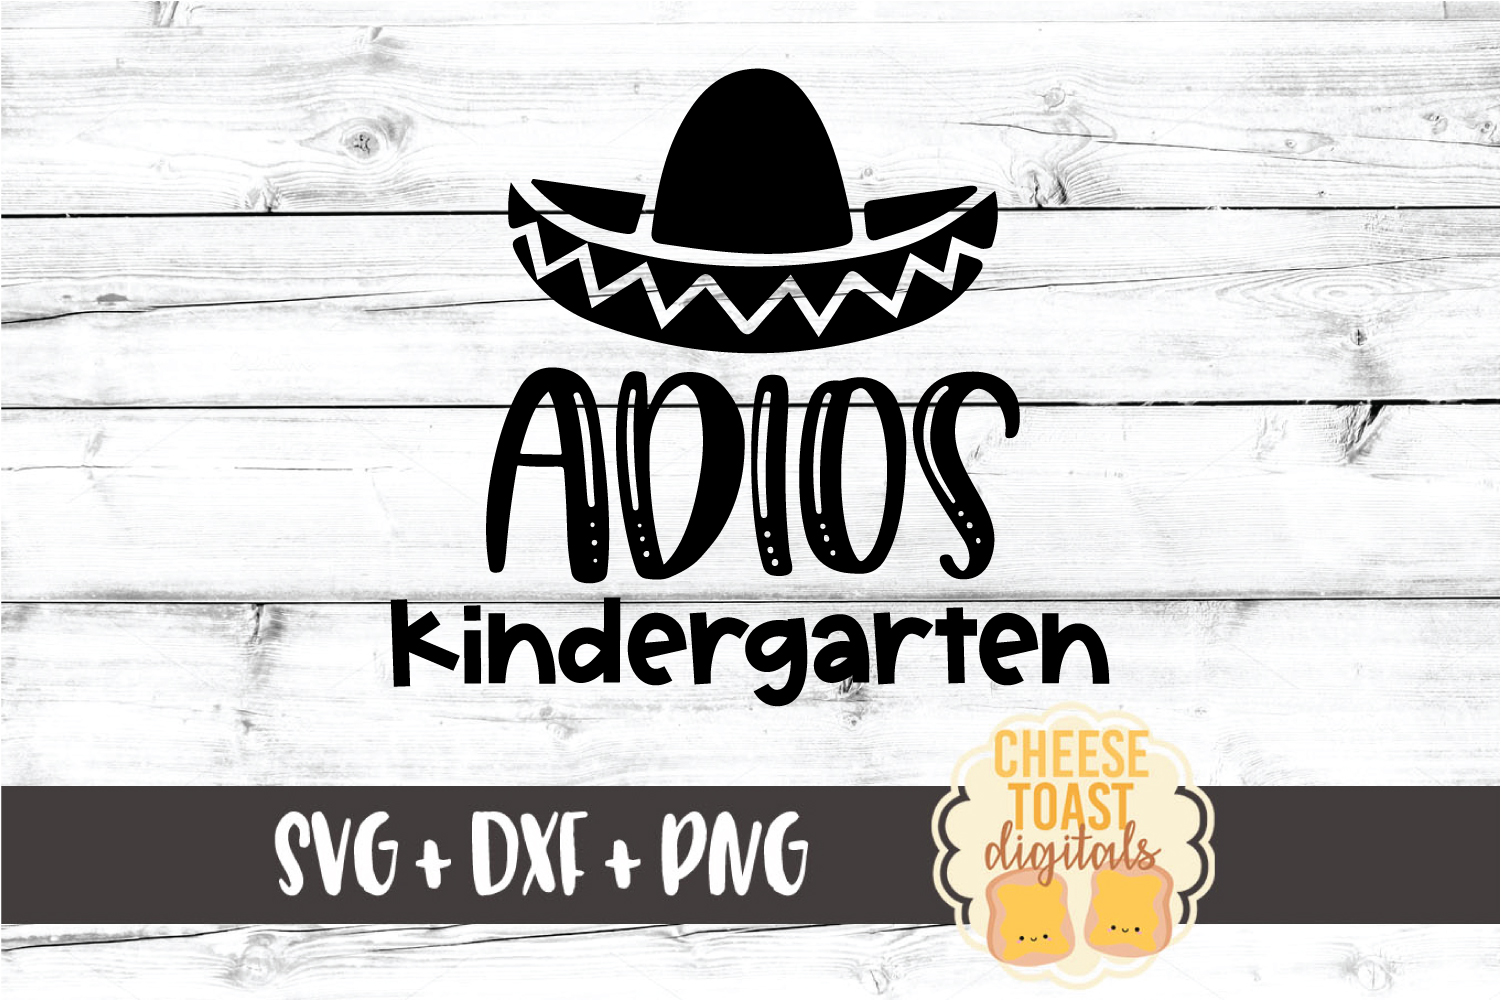 Adios Kindergarten - Last Day of School SVG PNG DXF Files example image 2